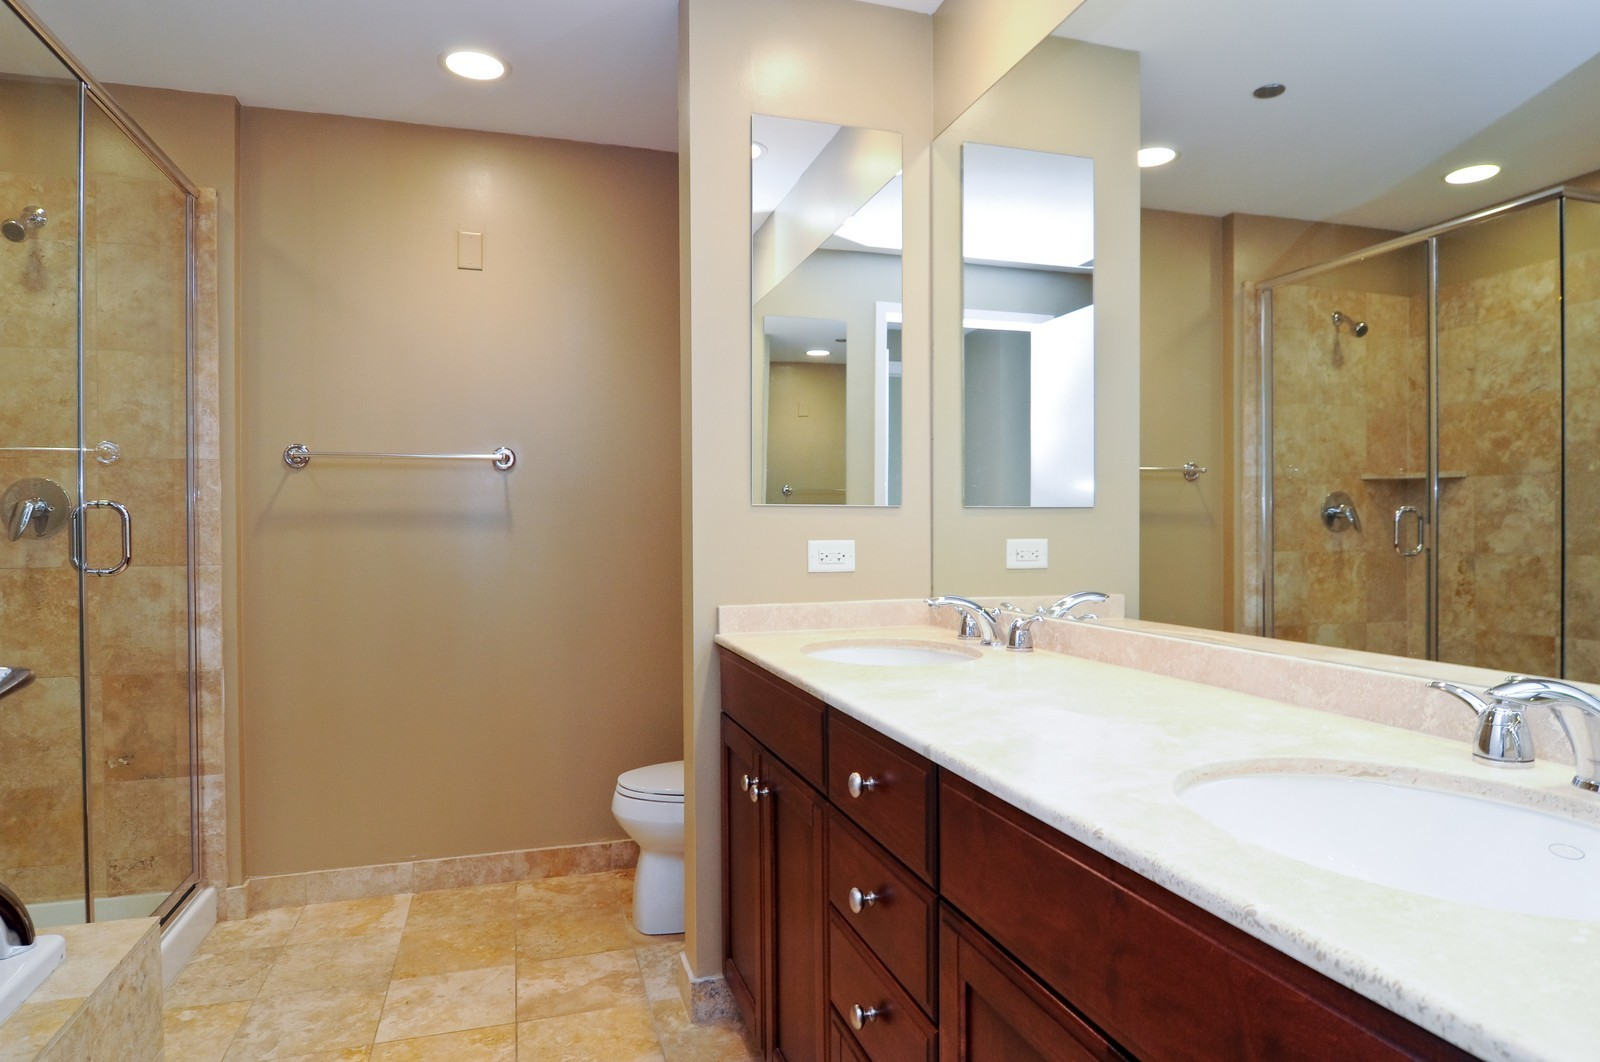 Real Estate Photography - 600 N Lake Shore Dr, Unit 2601, Chicago, IL, 60611 - Master Bathroom